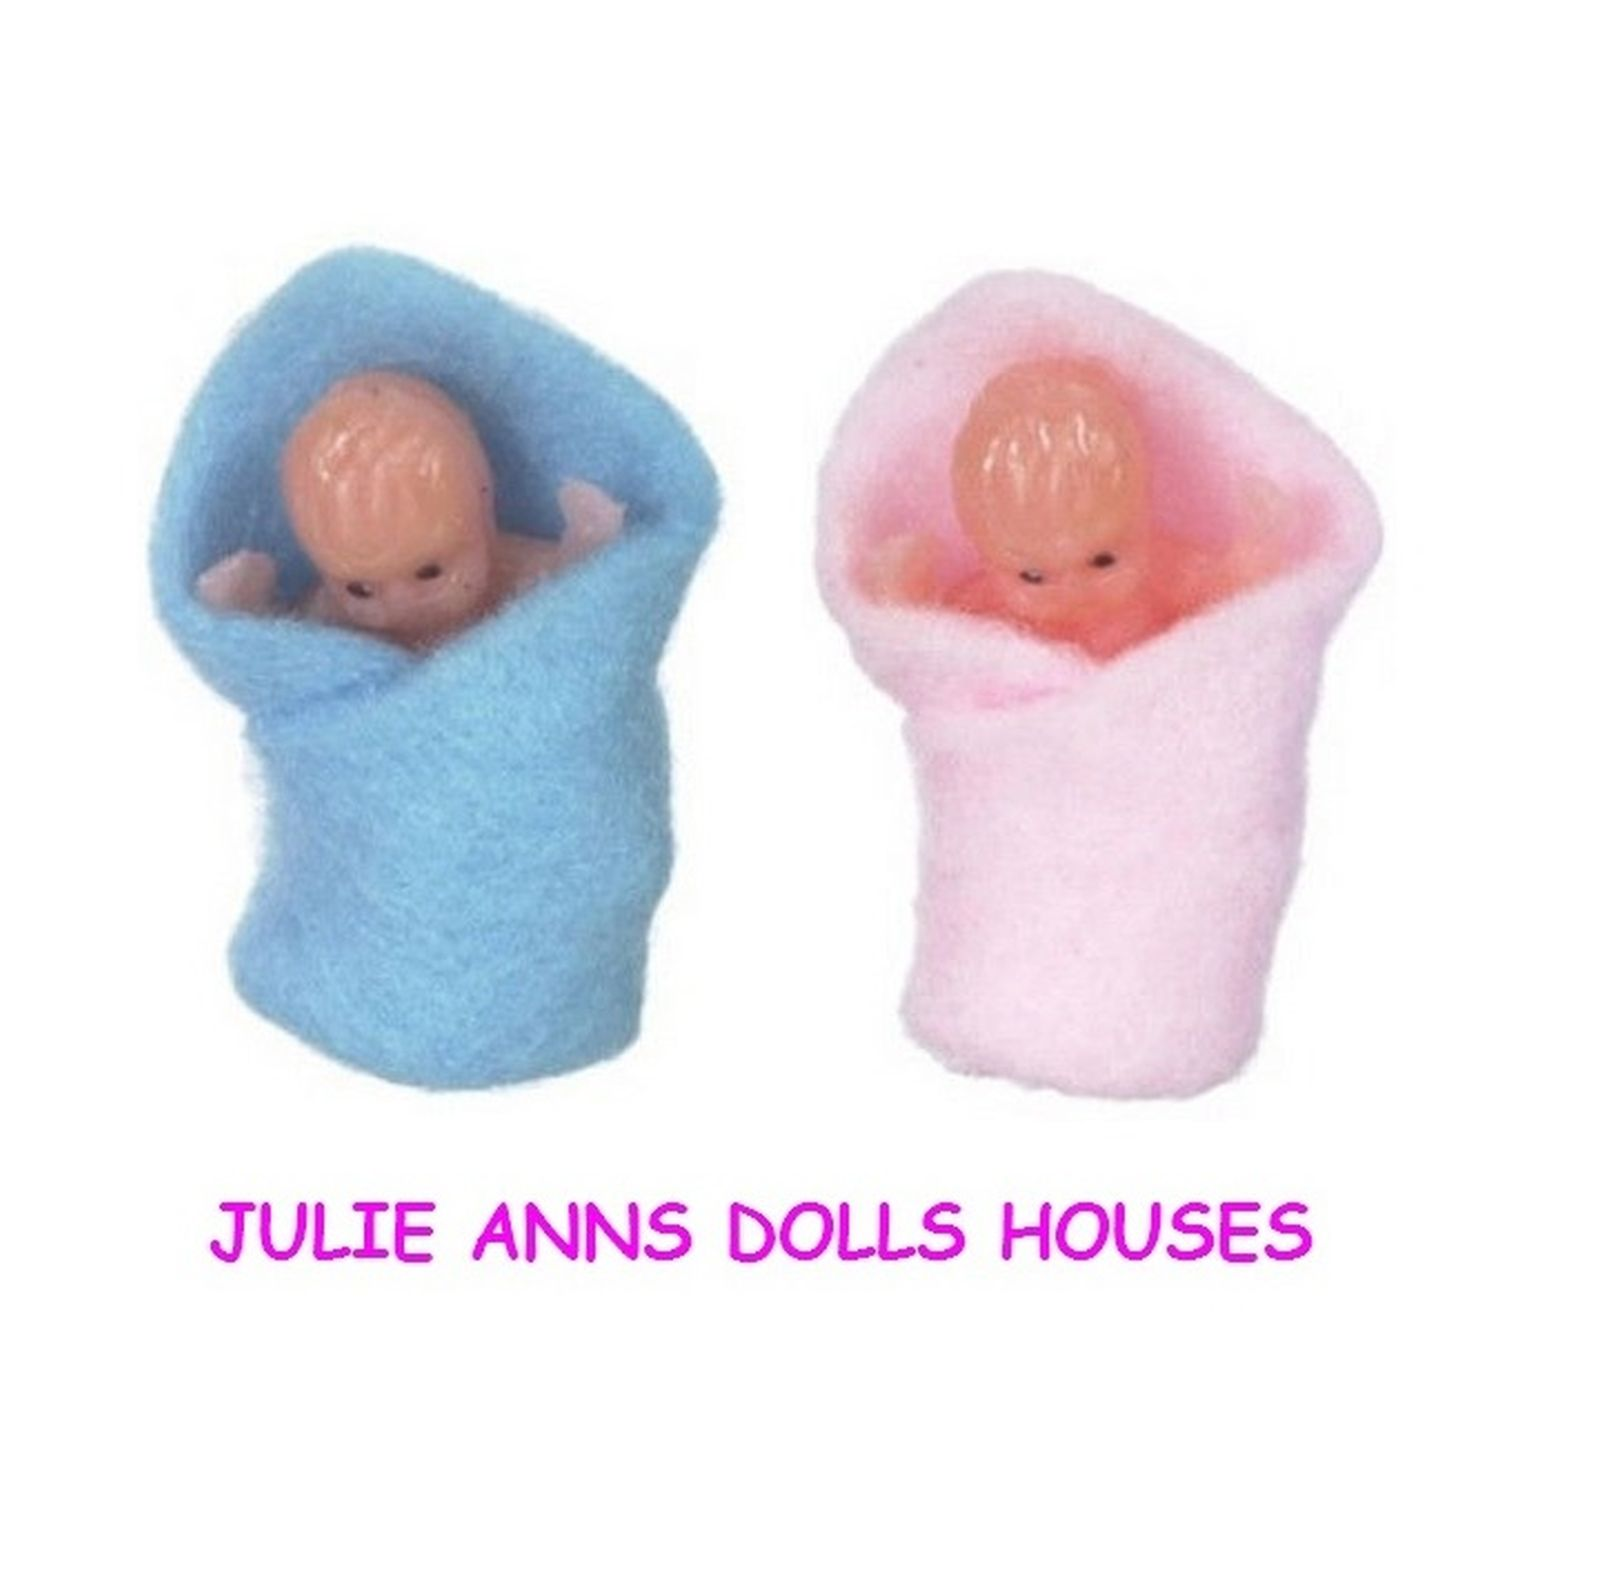 Dolls house family Babies, 1 baby boy  and 1 baby girl, FREE DELIVERY